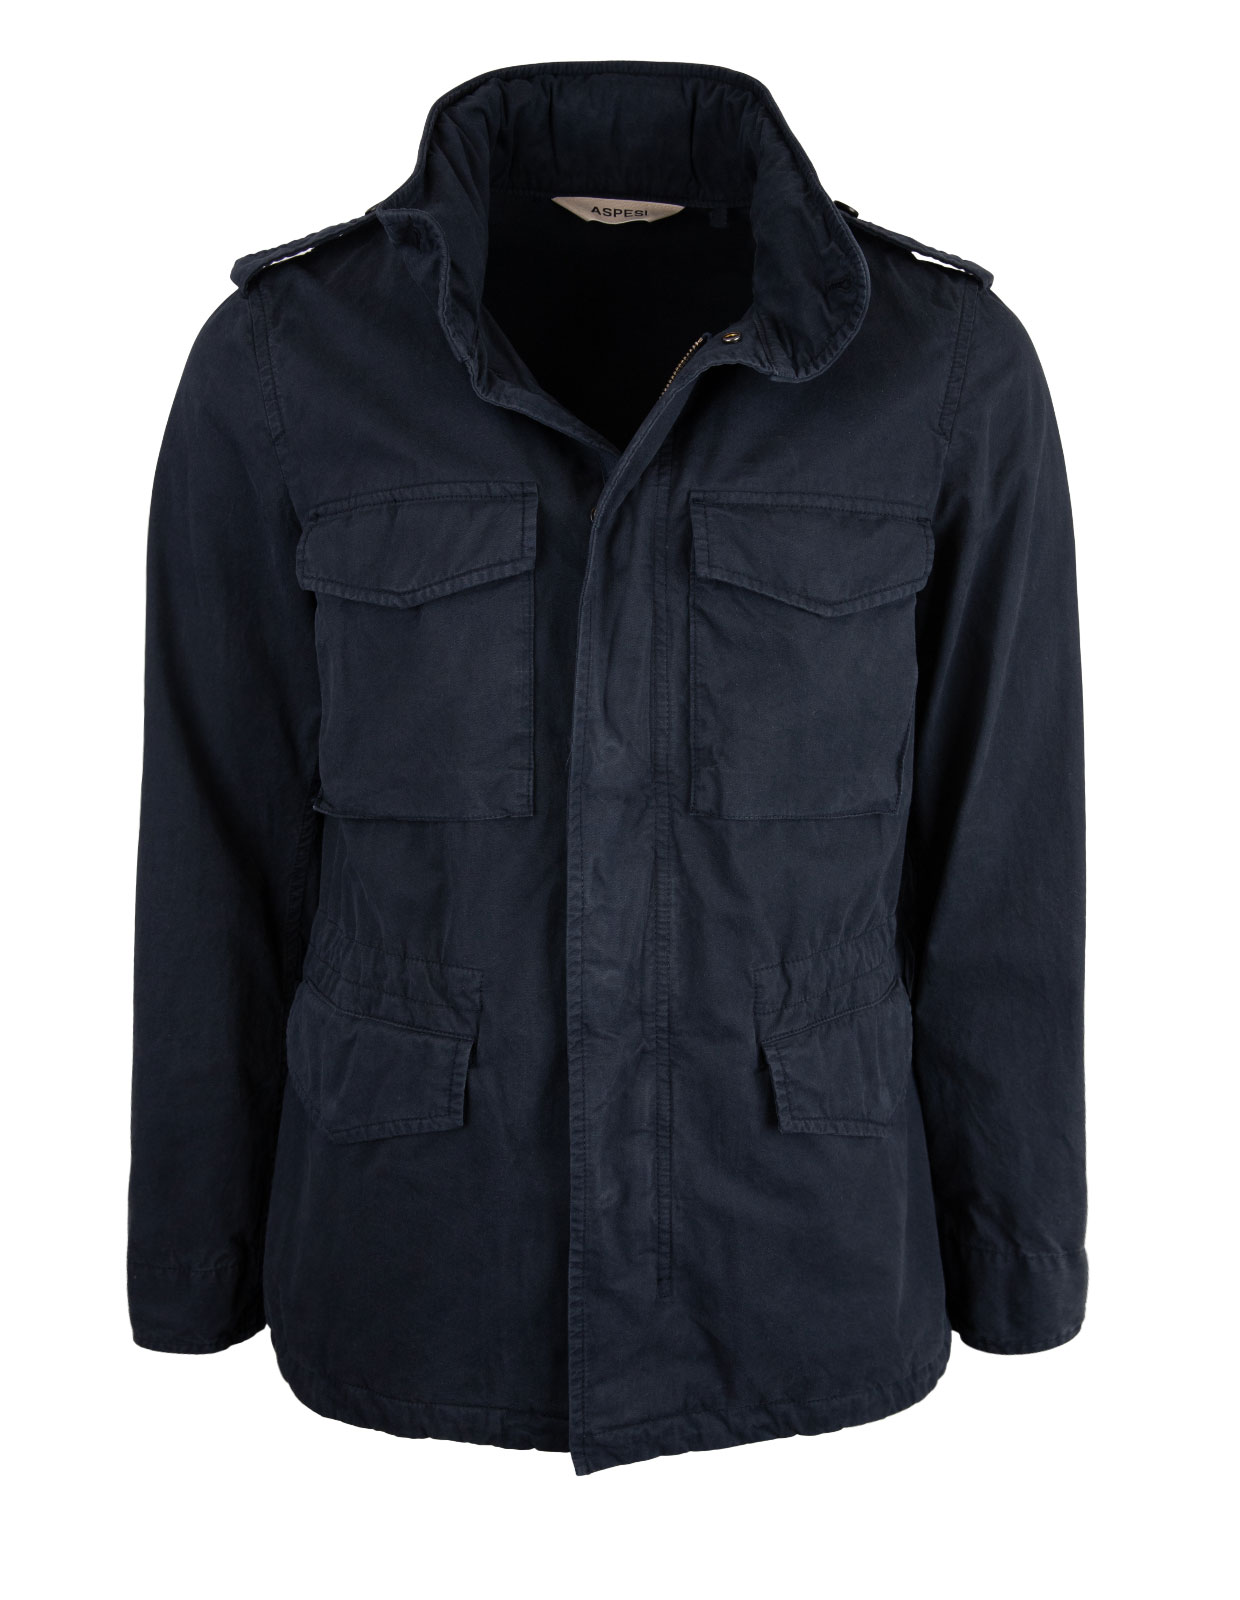 Field Jacket CG20 M65 Cotton Navy